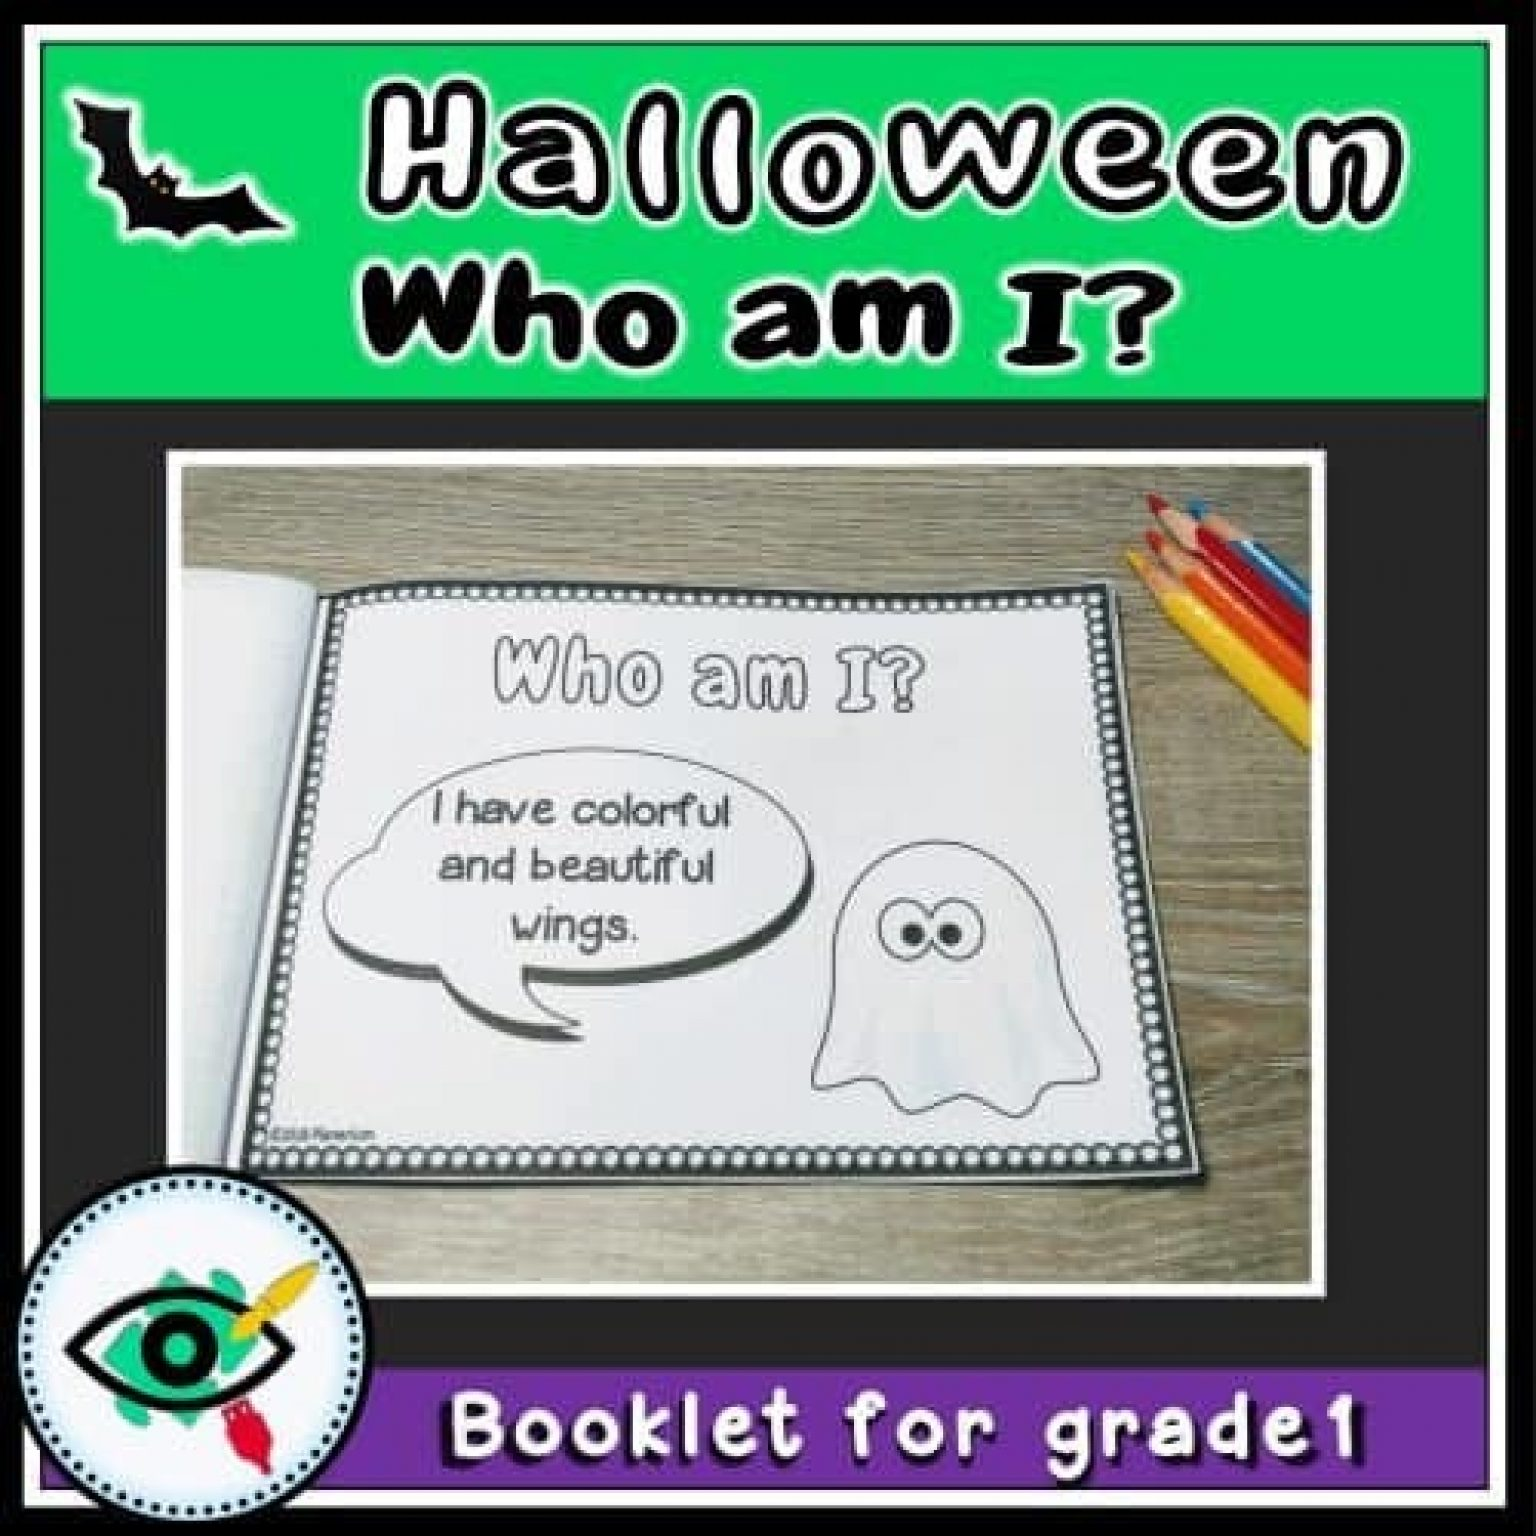 holiday-halloween-who-am-i-booklet-grade1-title1